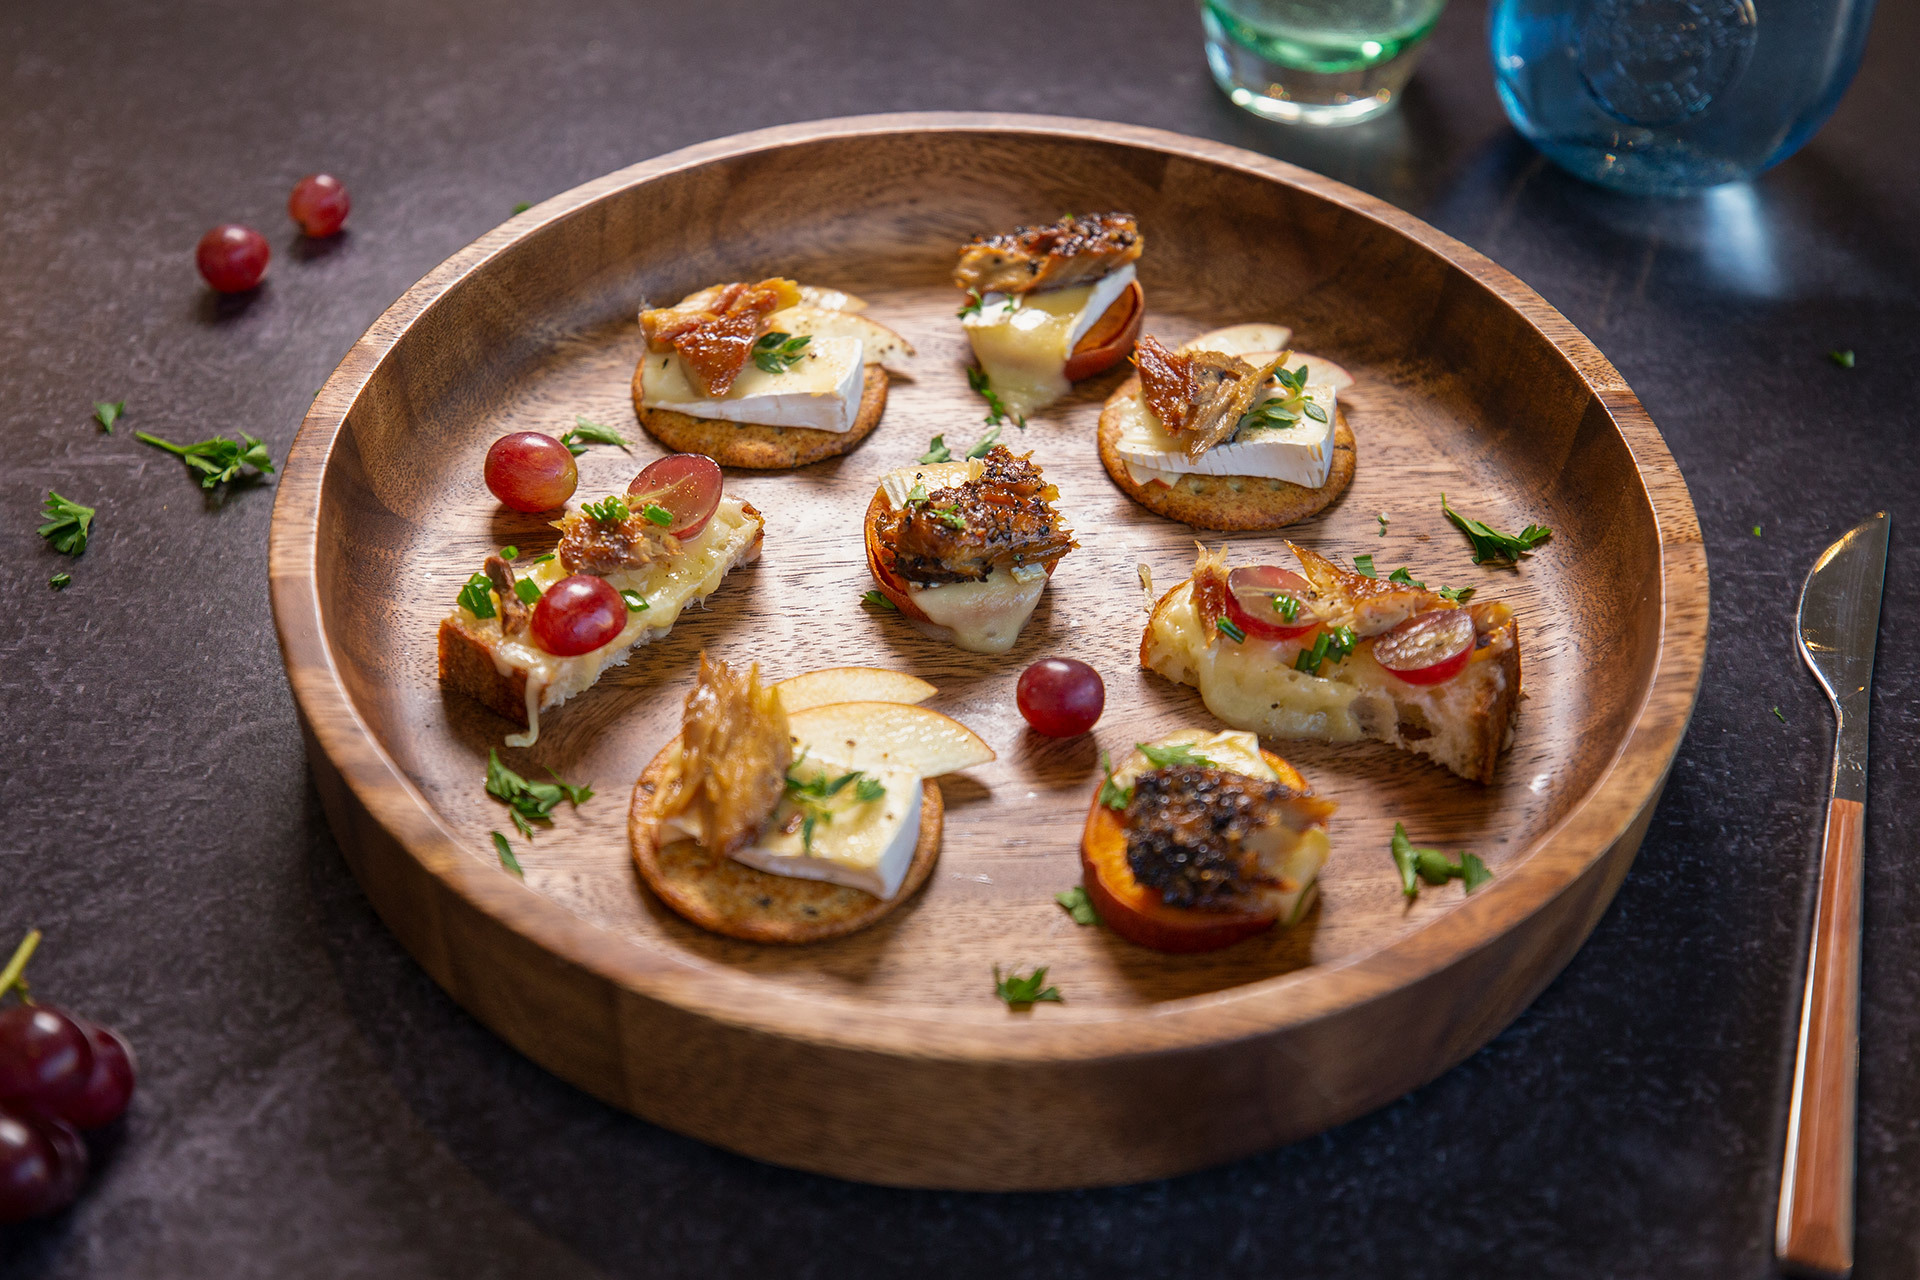 Party Appetizers 3 Ways